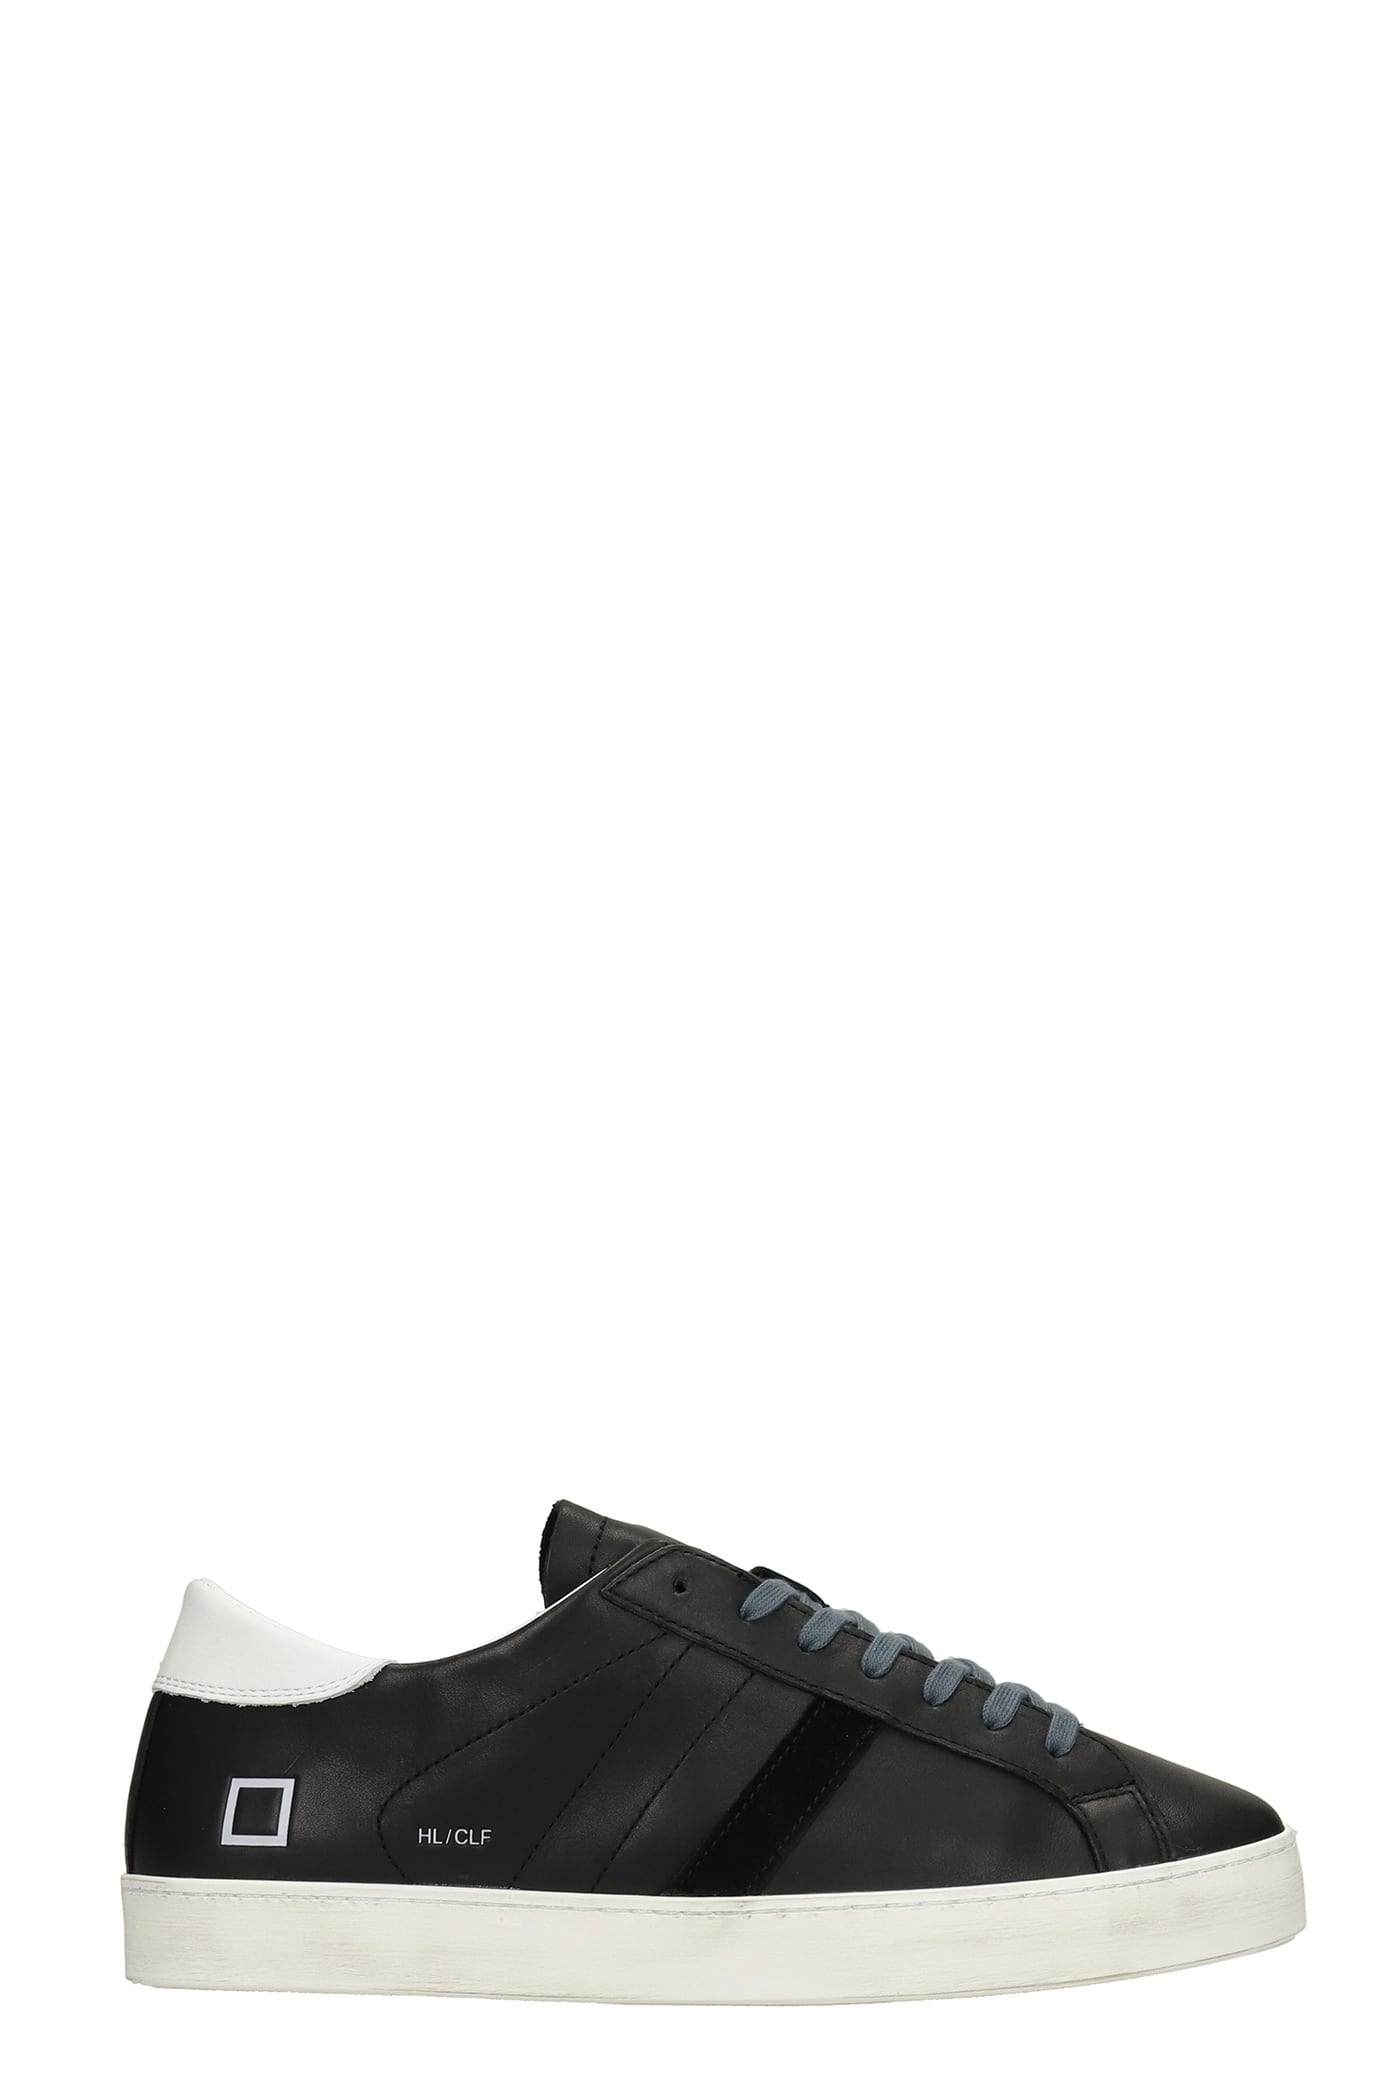 Hill Low Sneakers In Black Leather